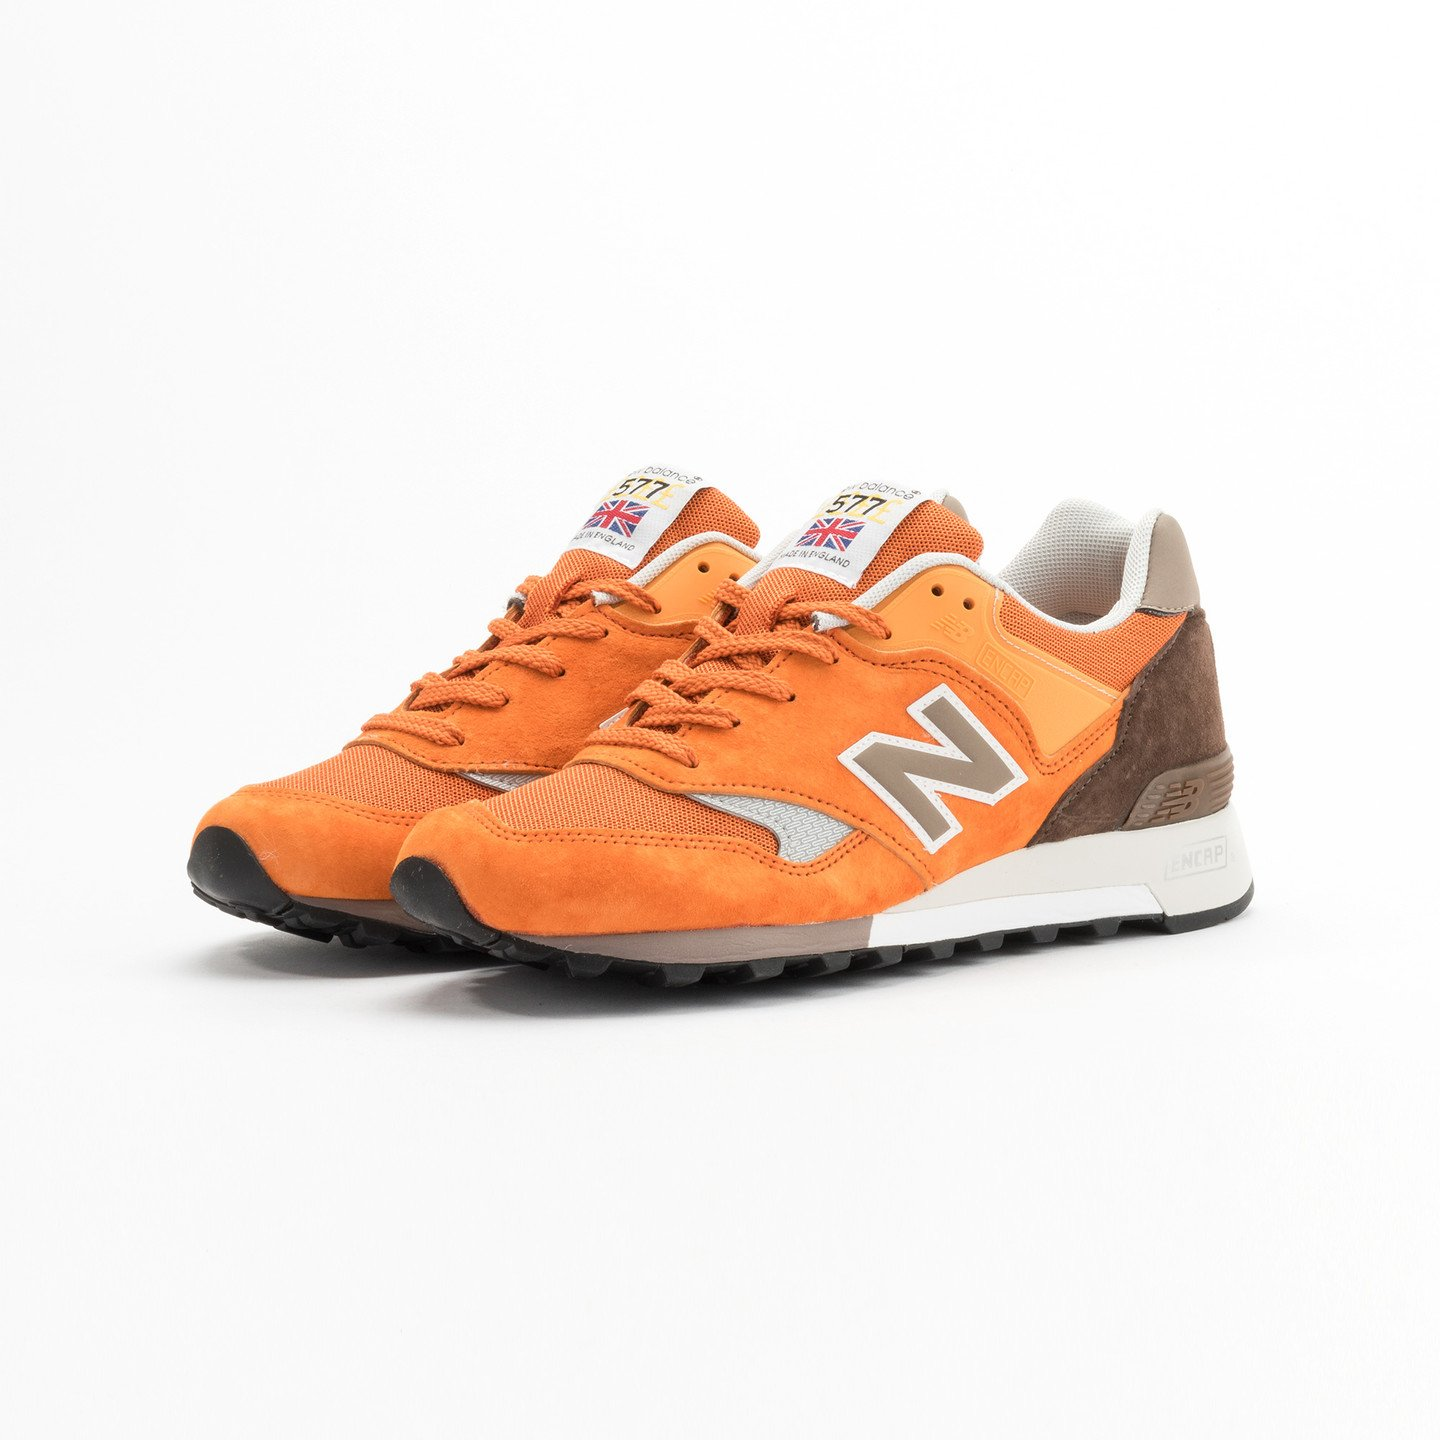 New Balance M577 ETO - Made in England Orange / Brown M577ETO-45